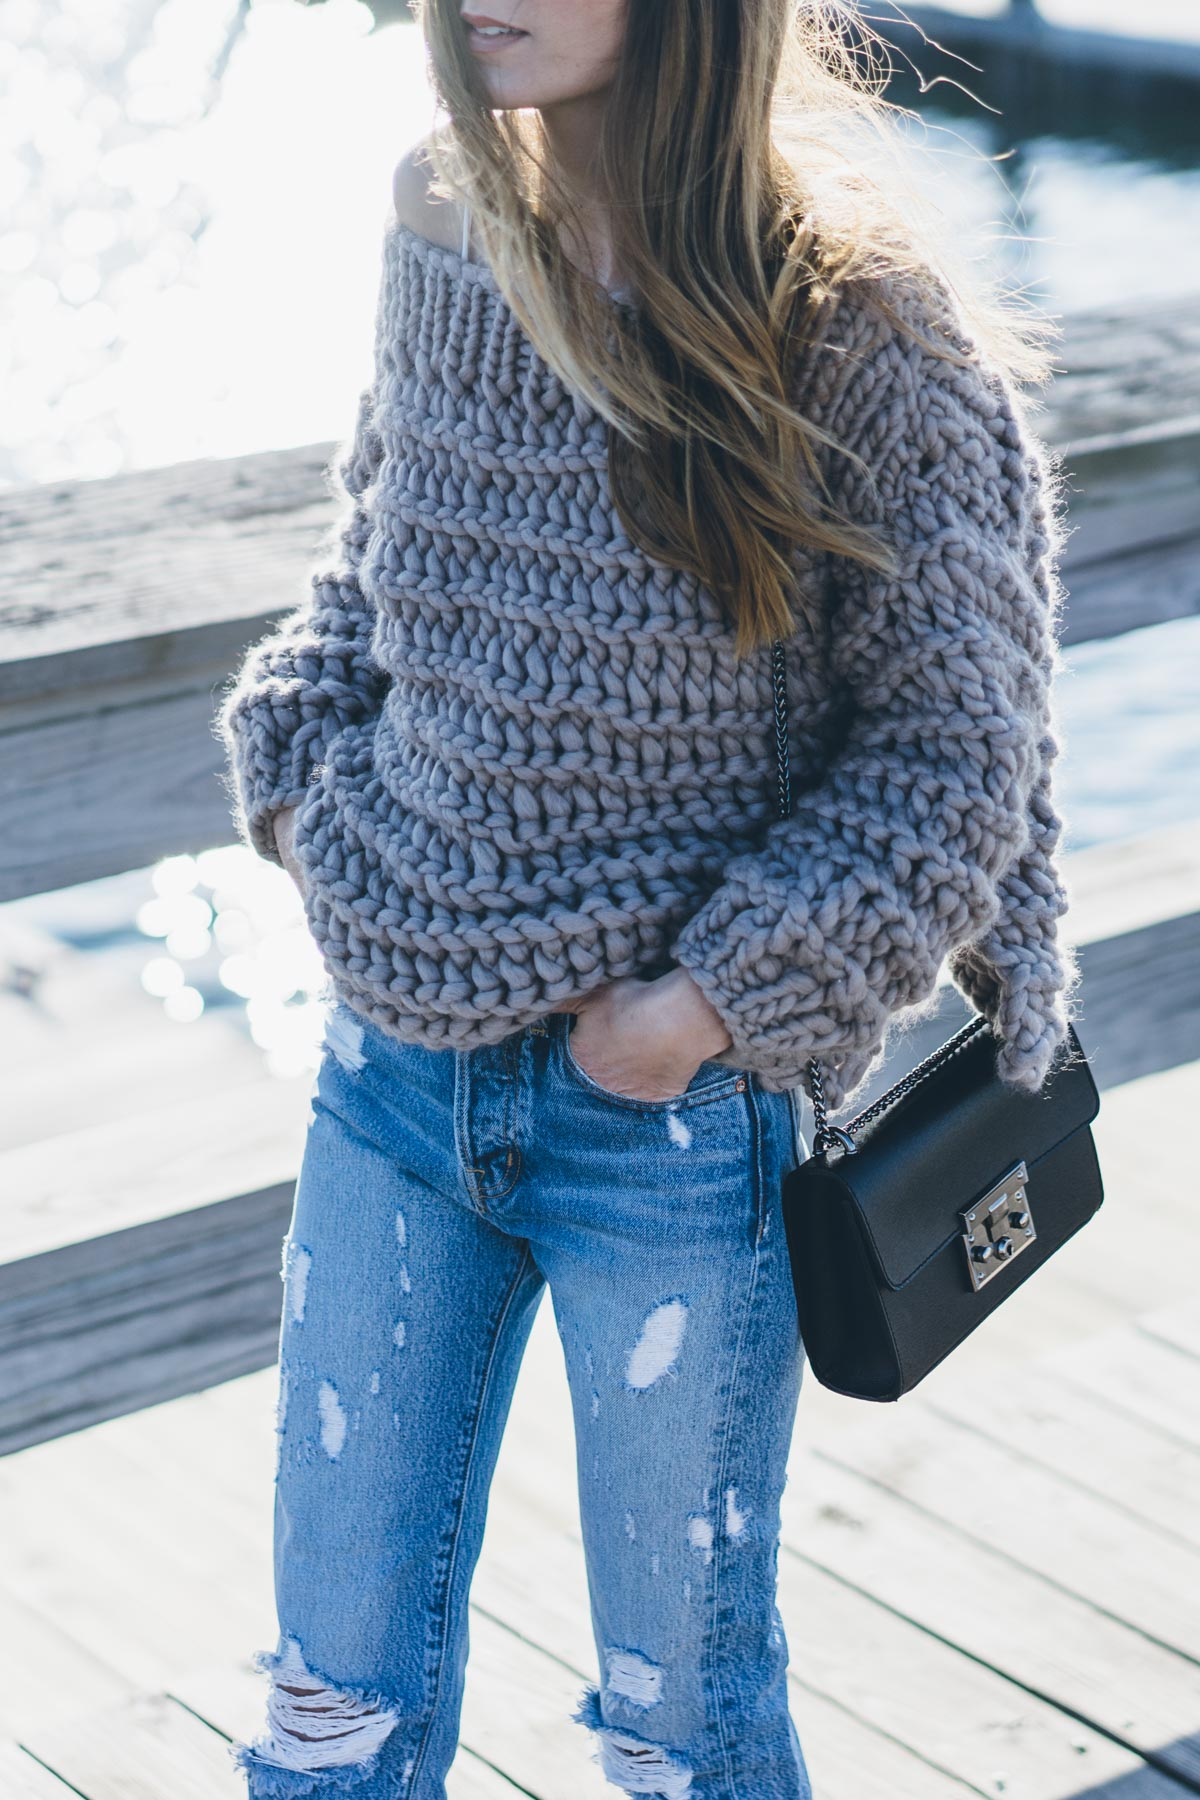 daa991b58 The-Third-Piece-Carina-Chunky-Knit-Sweater-AYR-. Credit  Jess Ann Kirby